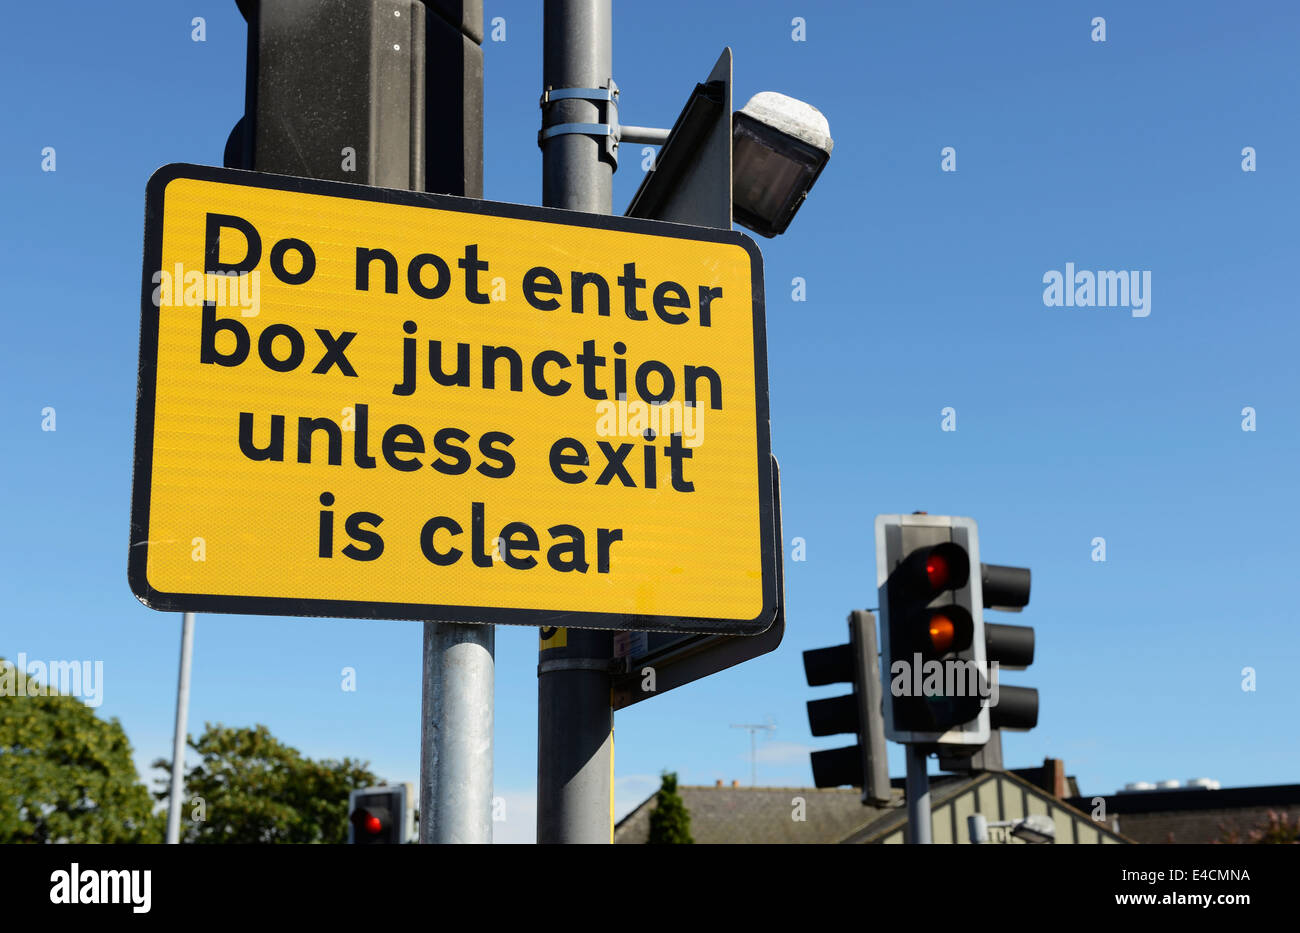 Do not enter box unless exit is clear sign - Stock Image